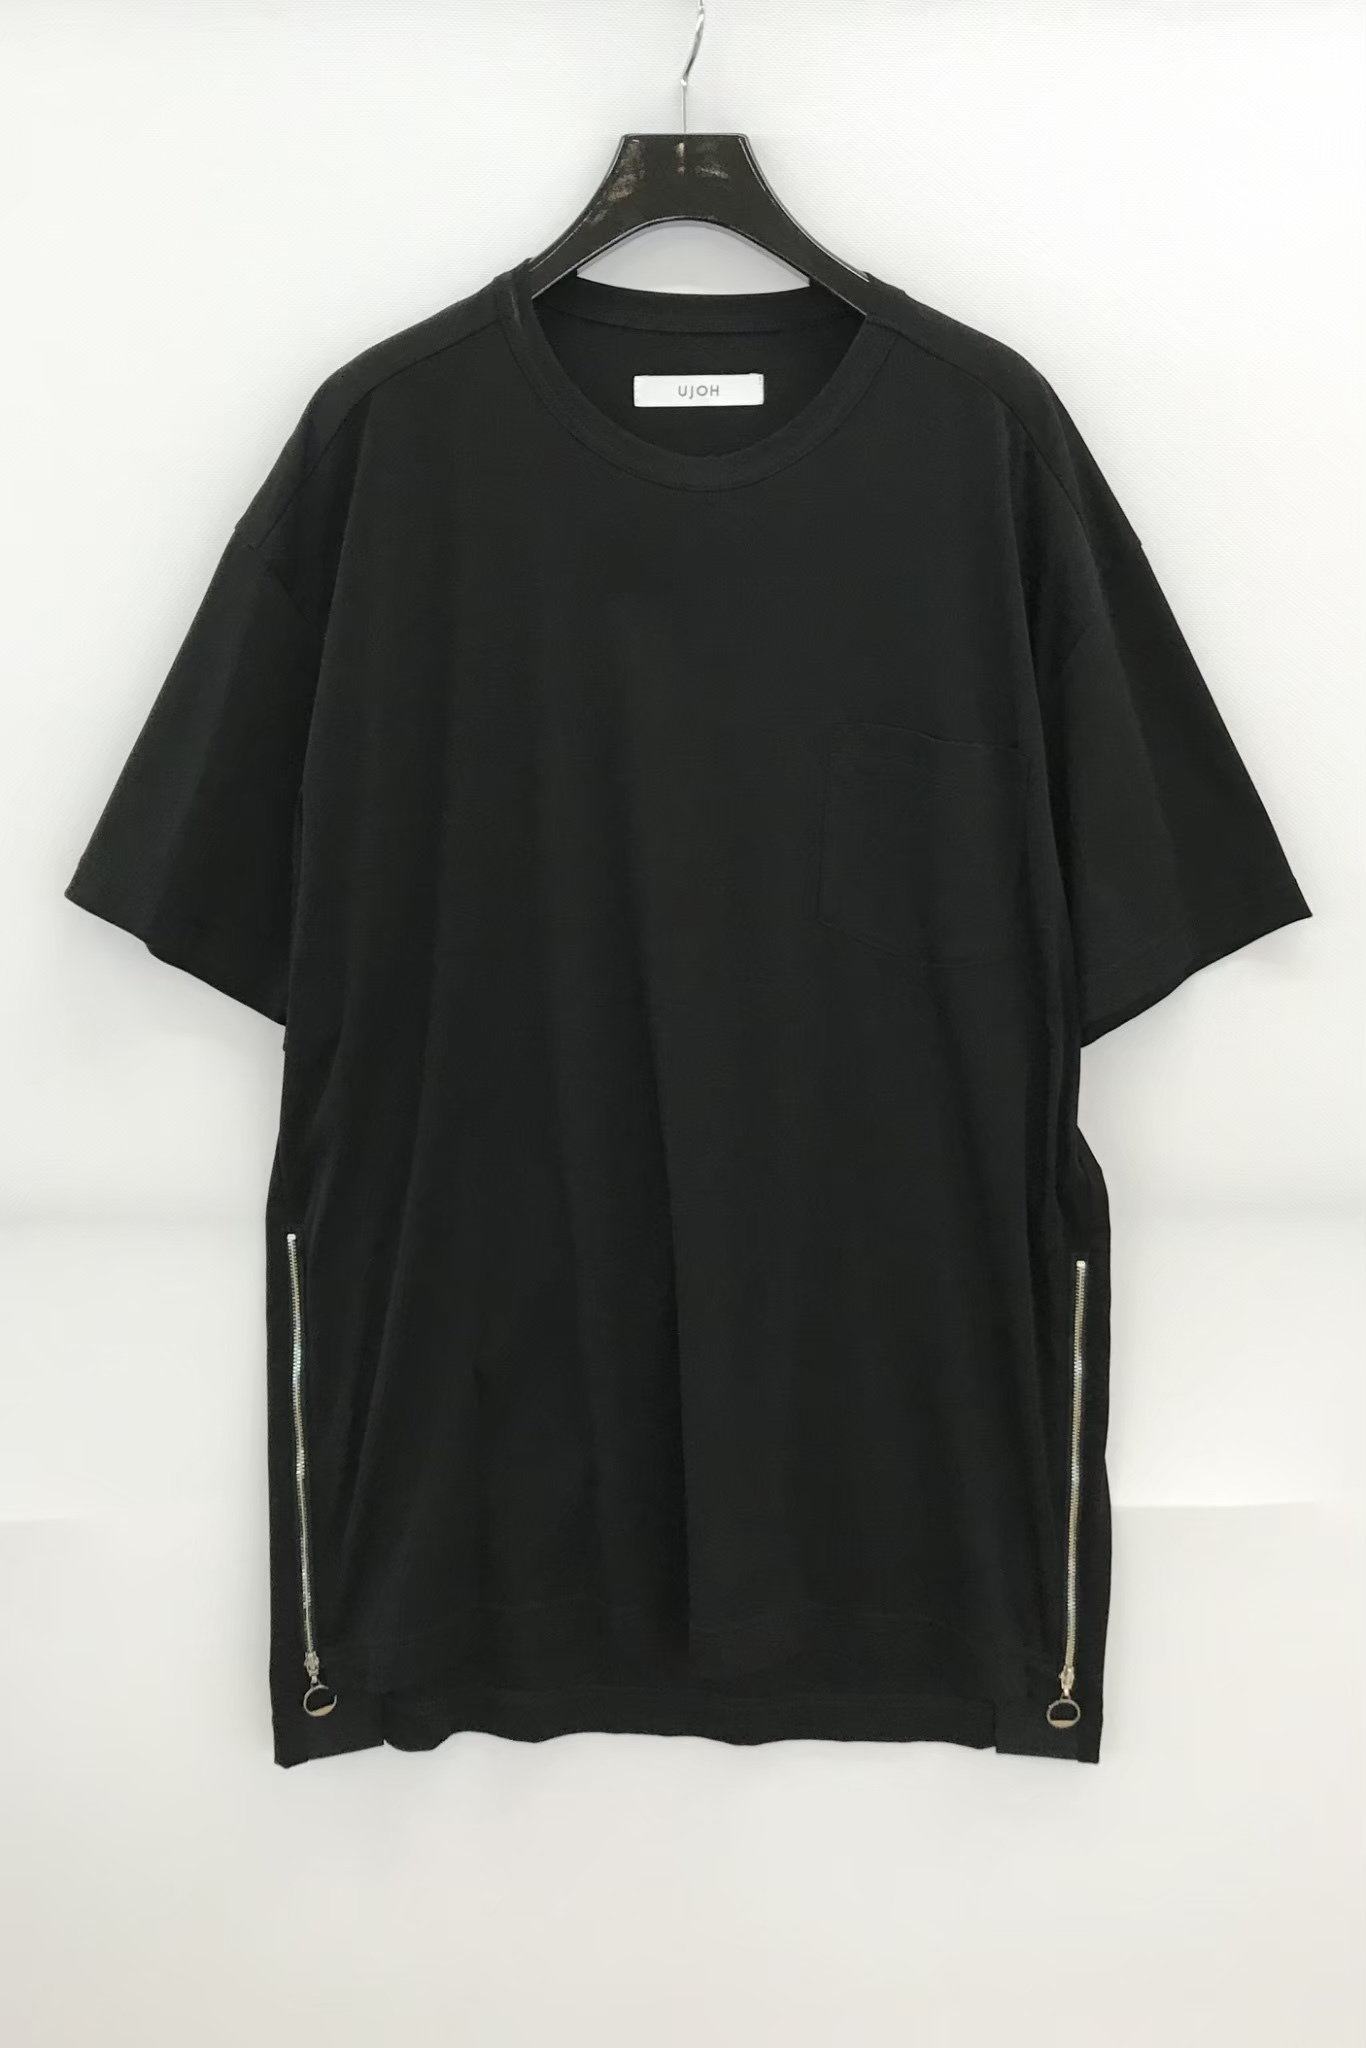 【UJOH】《21SS》M781-T52-002